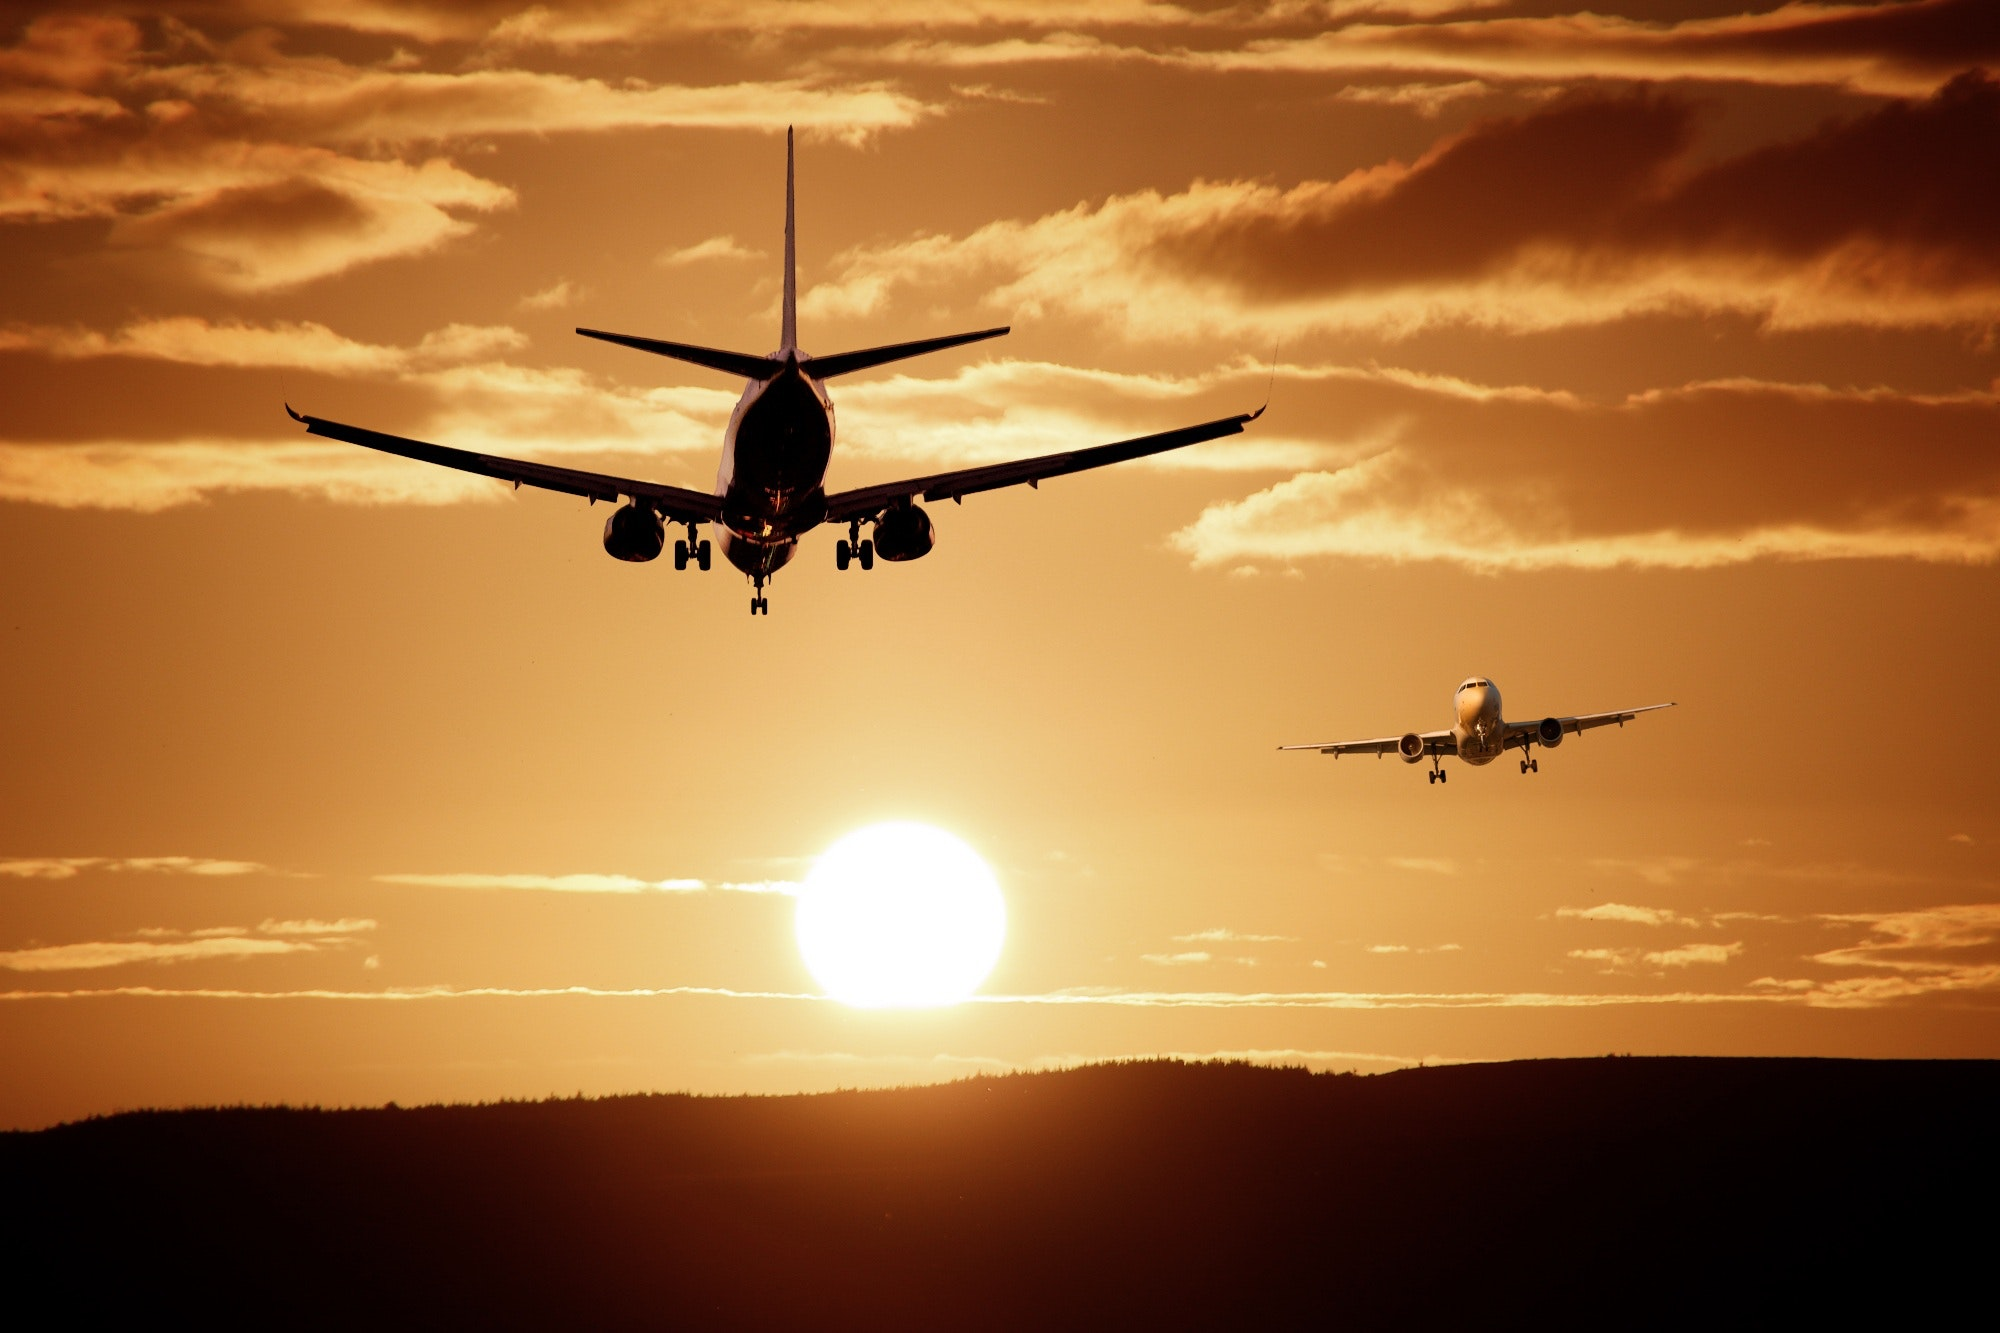 Silhouette of airplanes photo